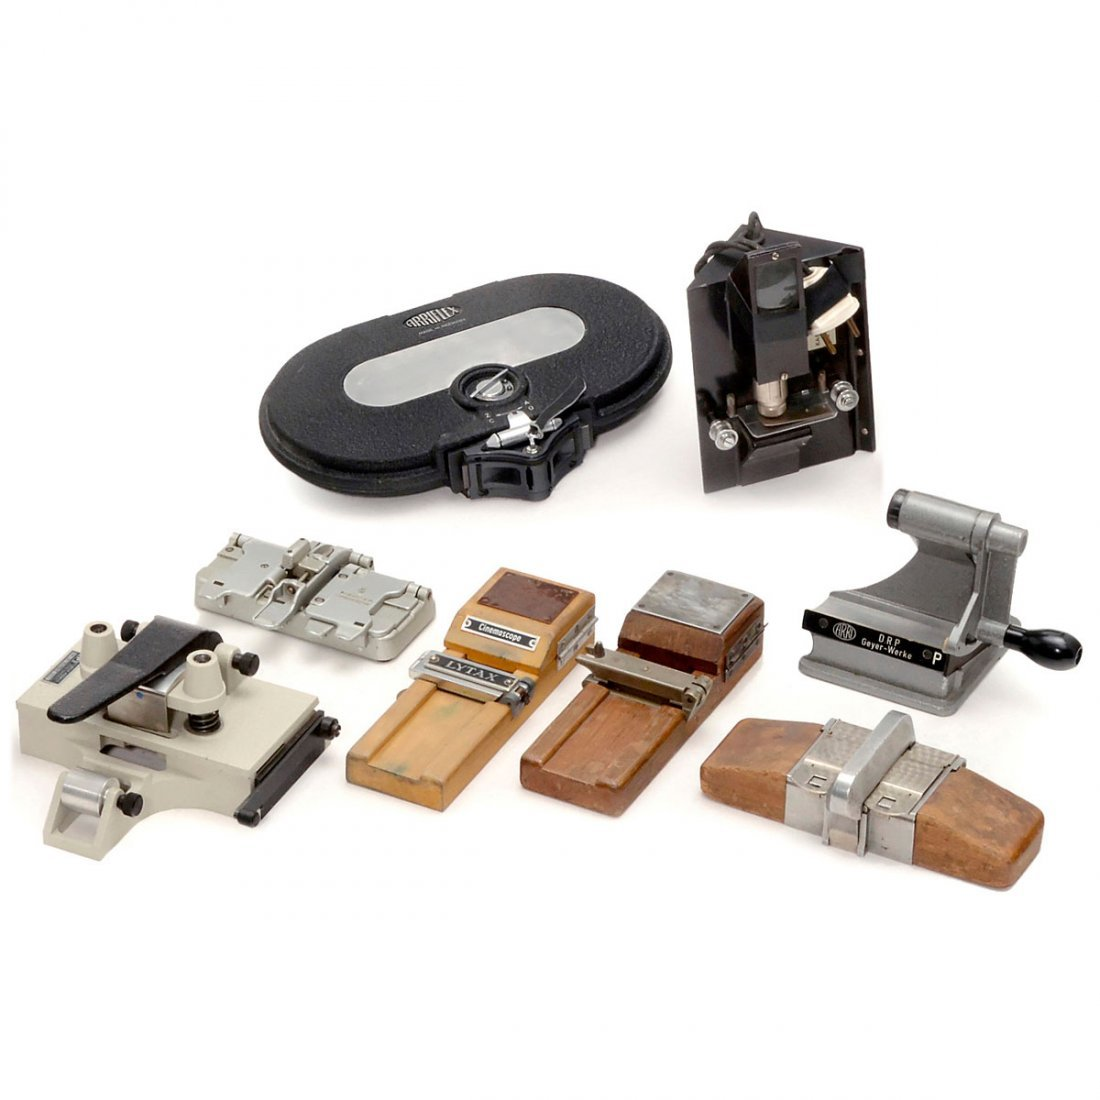 35mm and 16mm Movie Film Splicers and Accessories